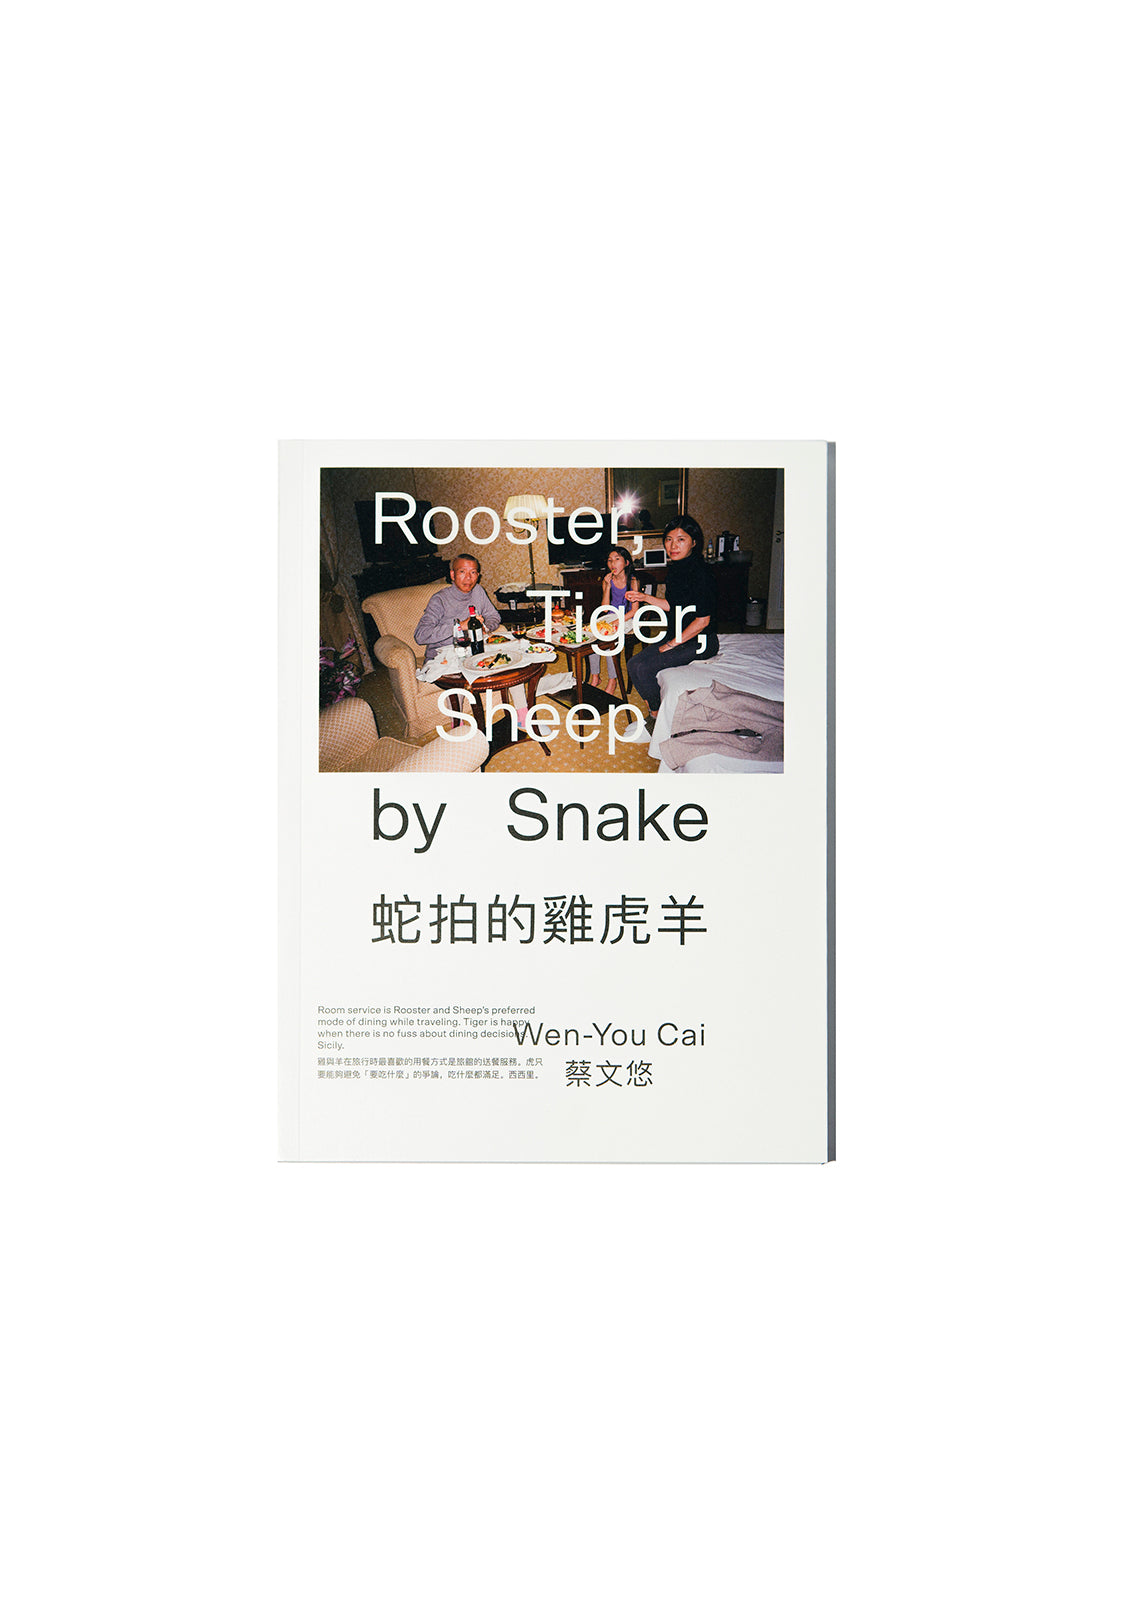 Rooster, Tiger, Sheep by Snake